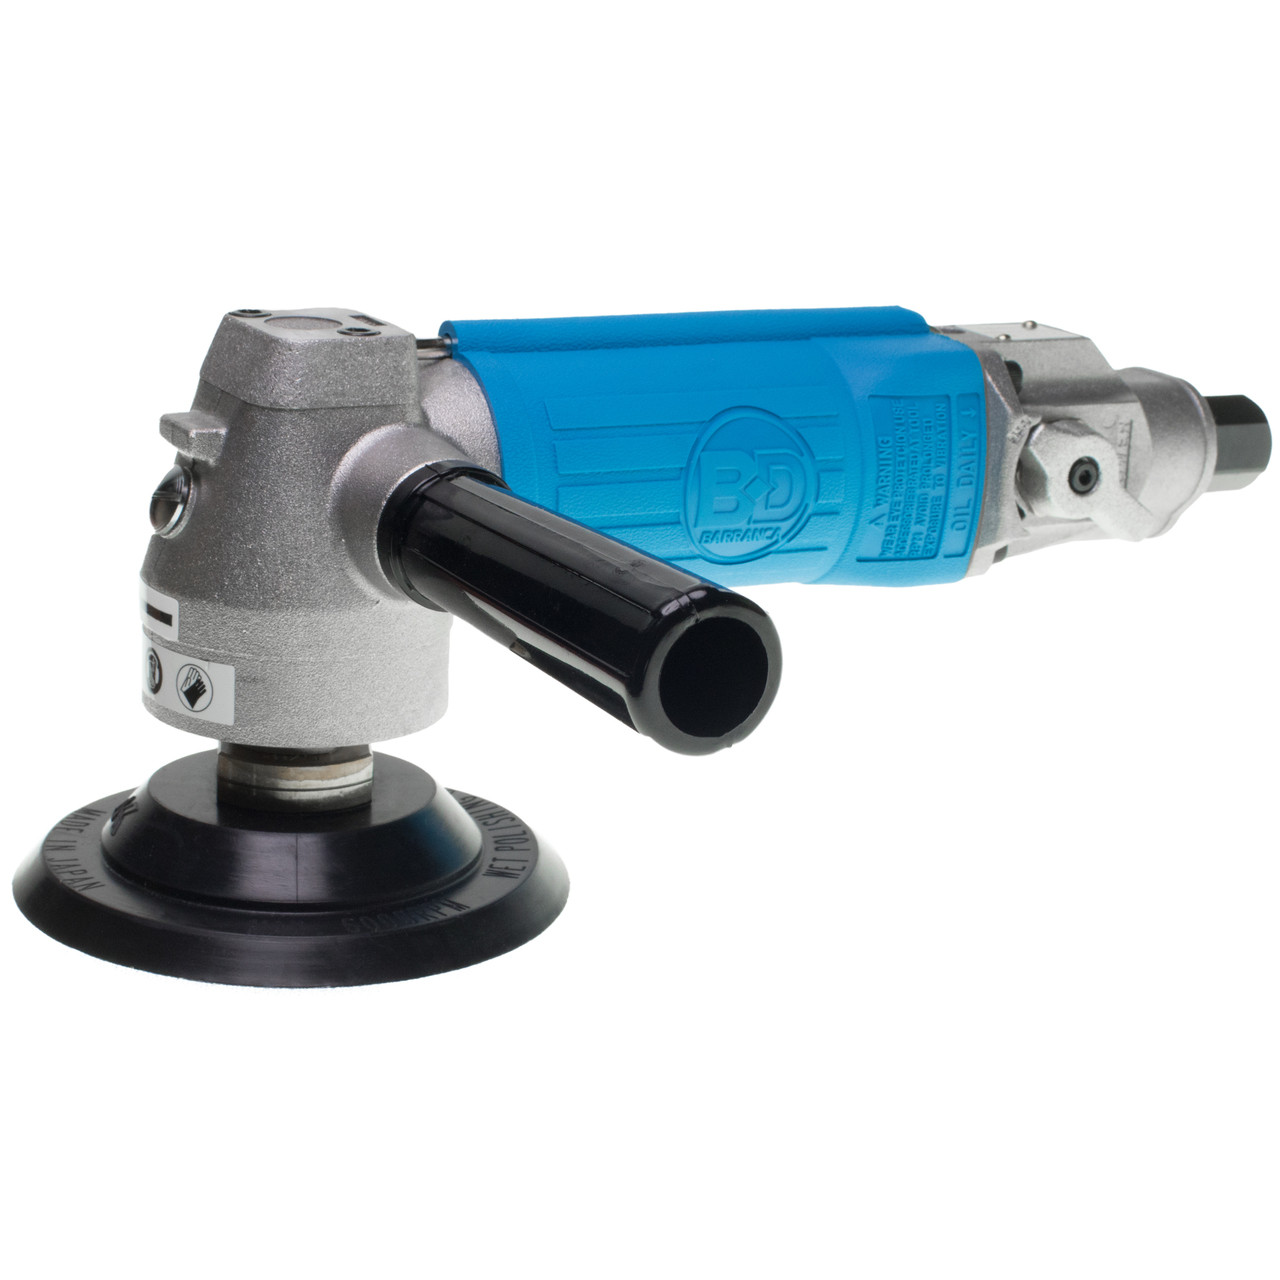 Air Grinder Wet Stone Polisher 5500 Rpm with Rear Exhaust High Power